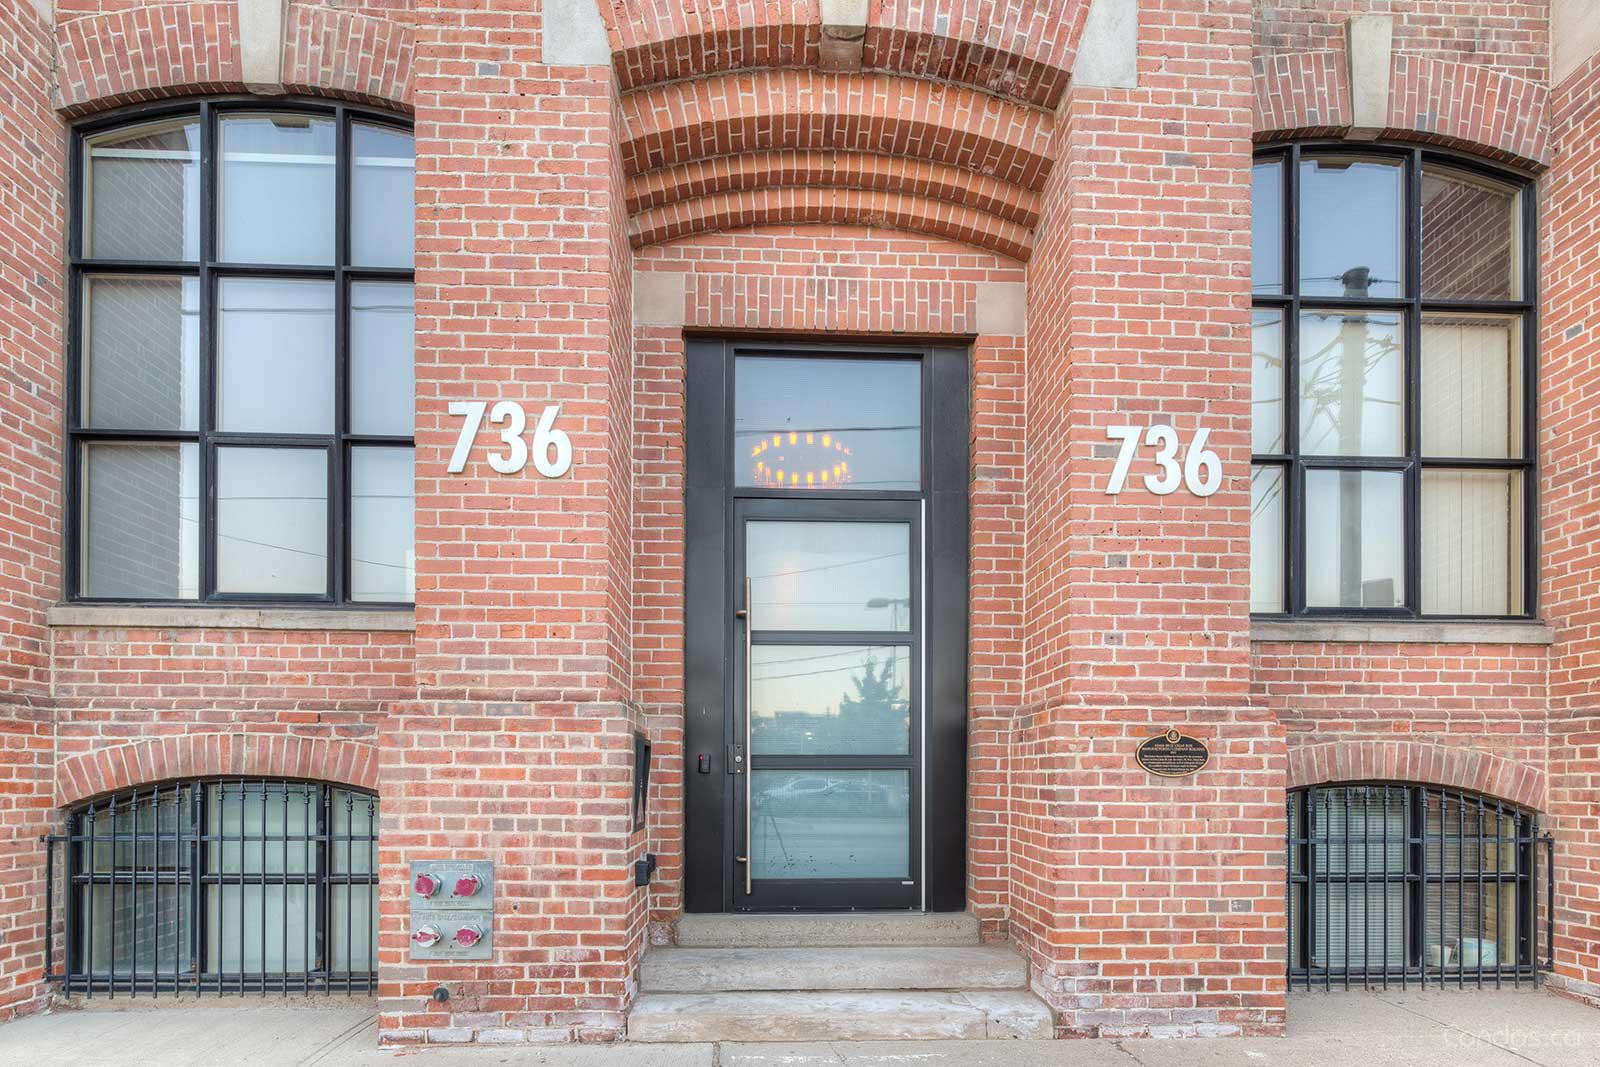 Tannery Lofts at 736 Dundas St E, Toronto 1